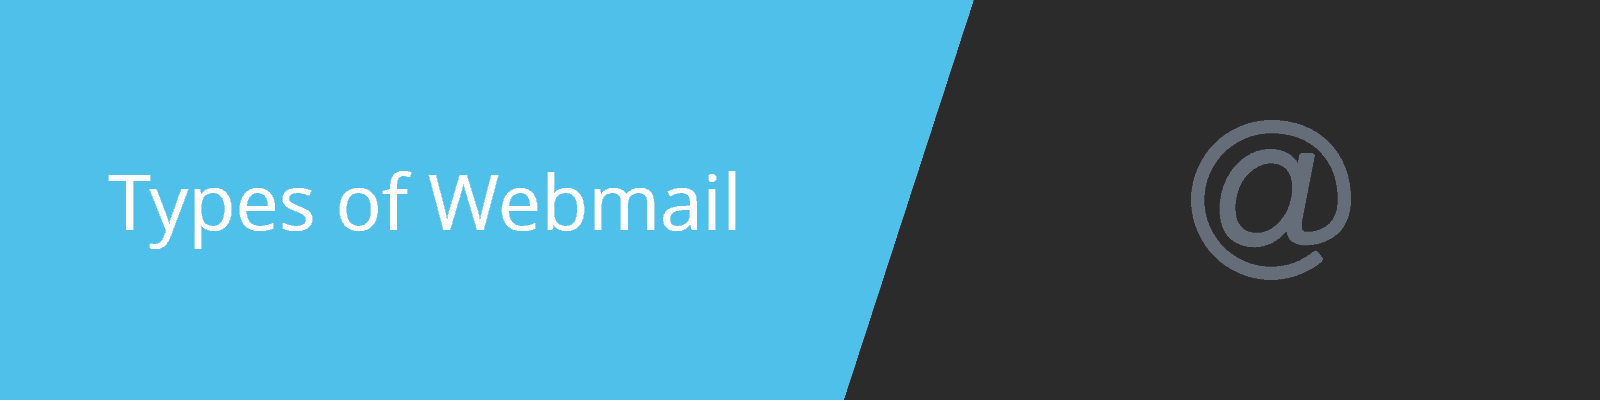 Types of Webmail